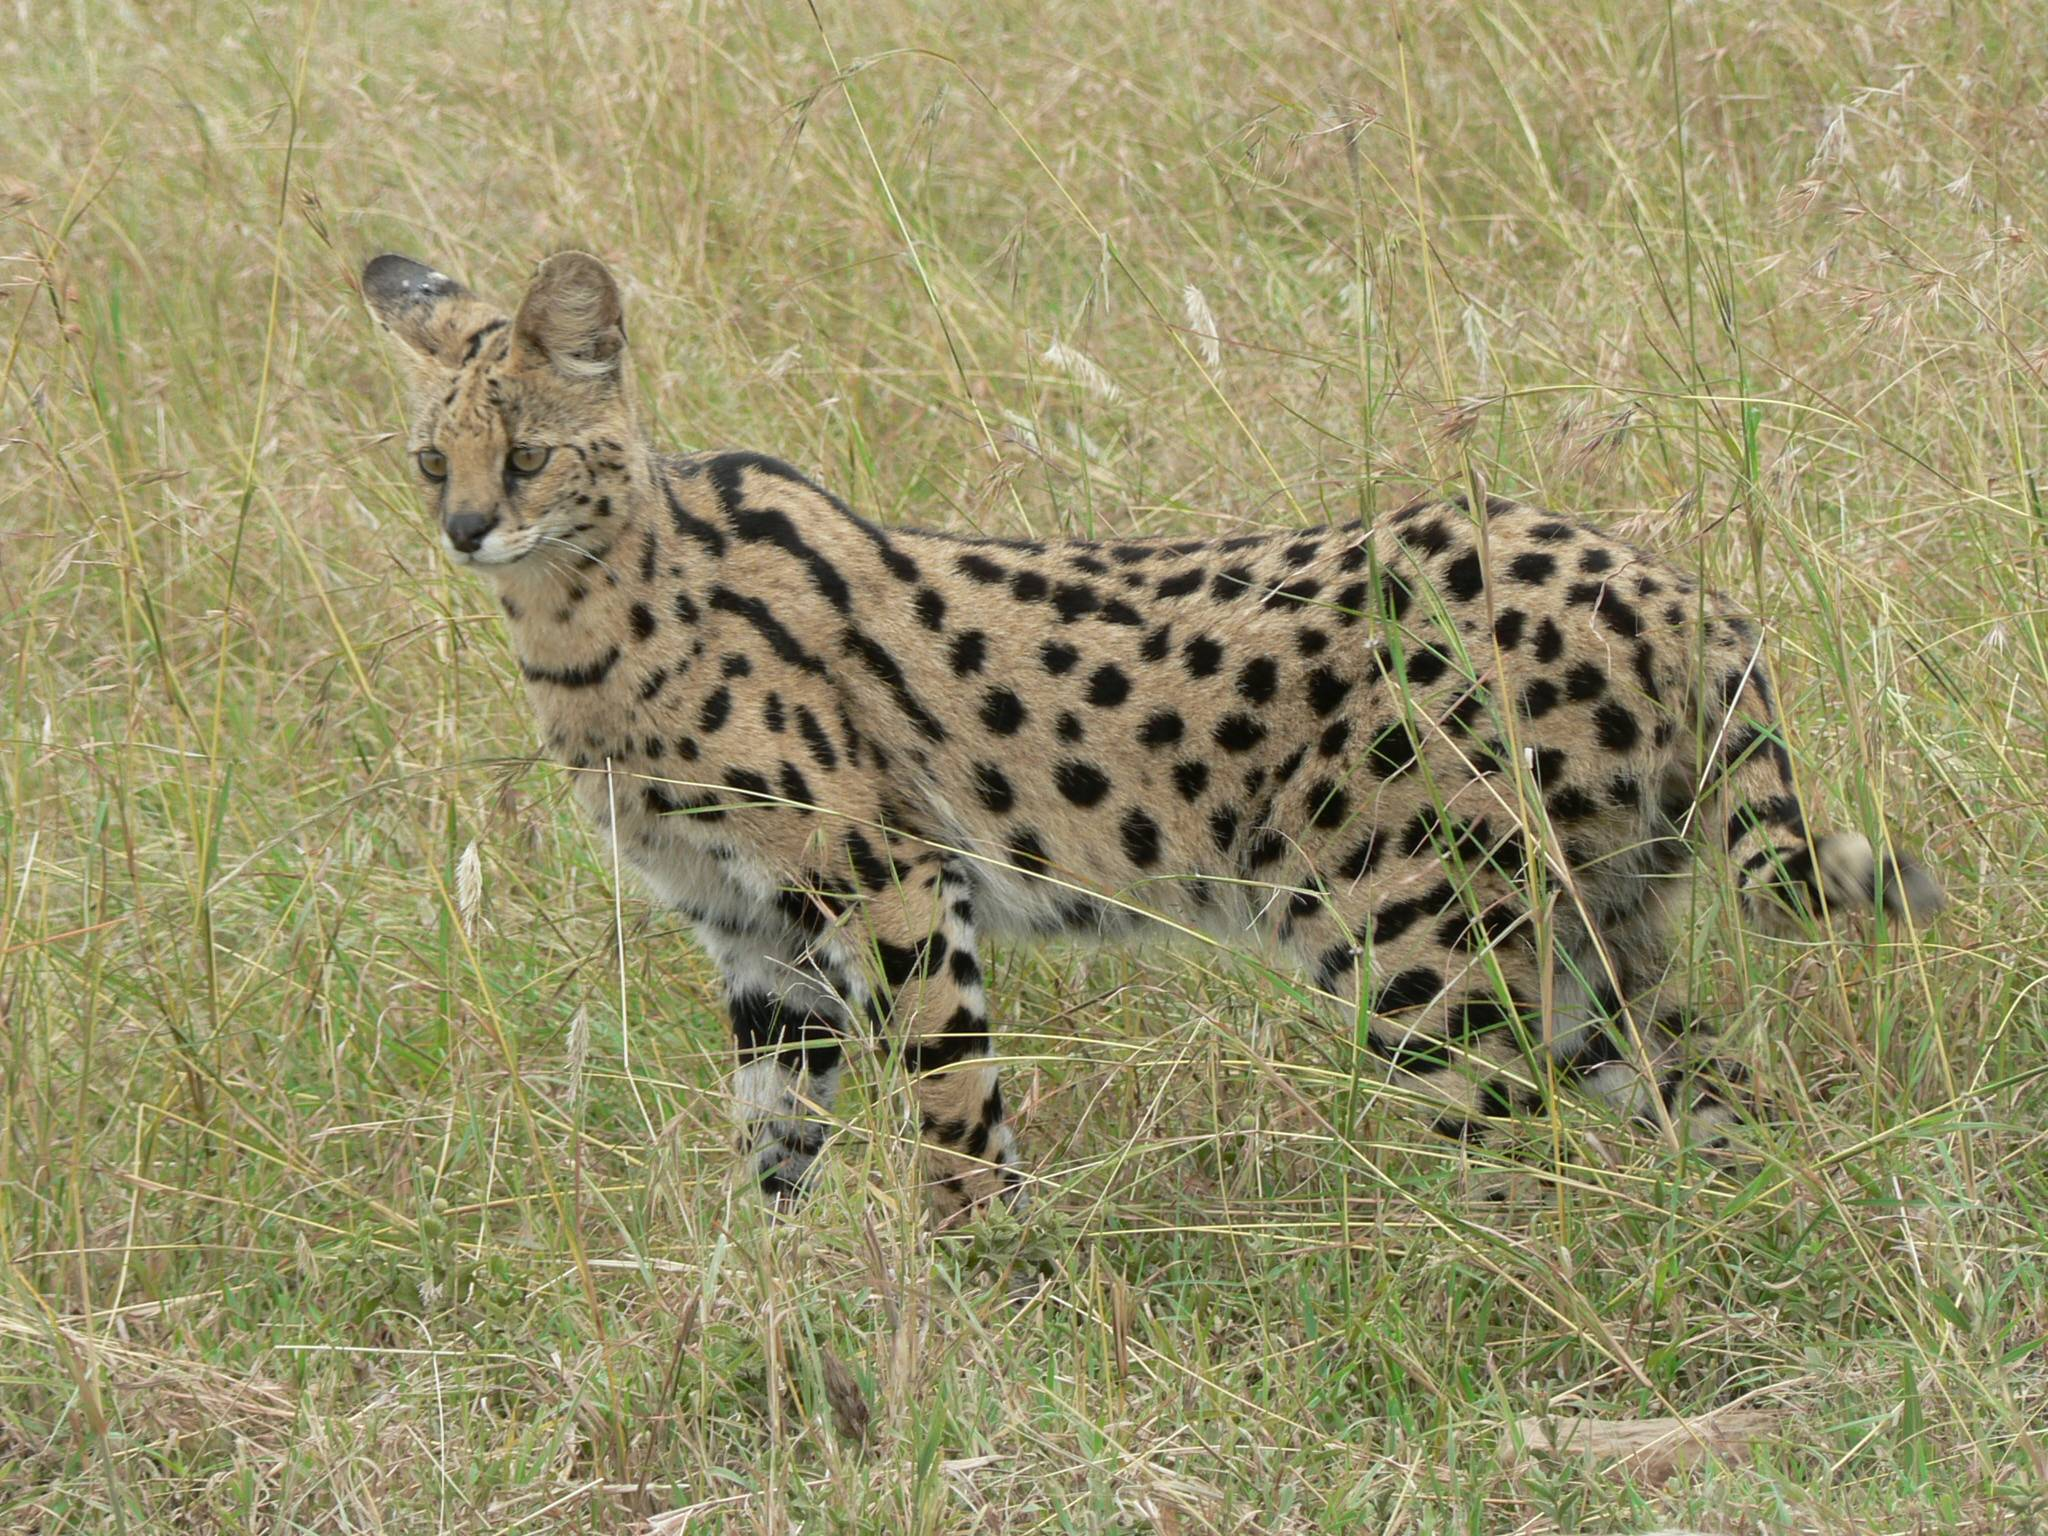 https://upload.wikimedia.org/wikipedia/commons/6/6d/Serval_in_Tanzania.jpg